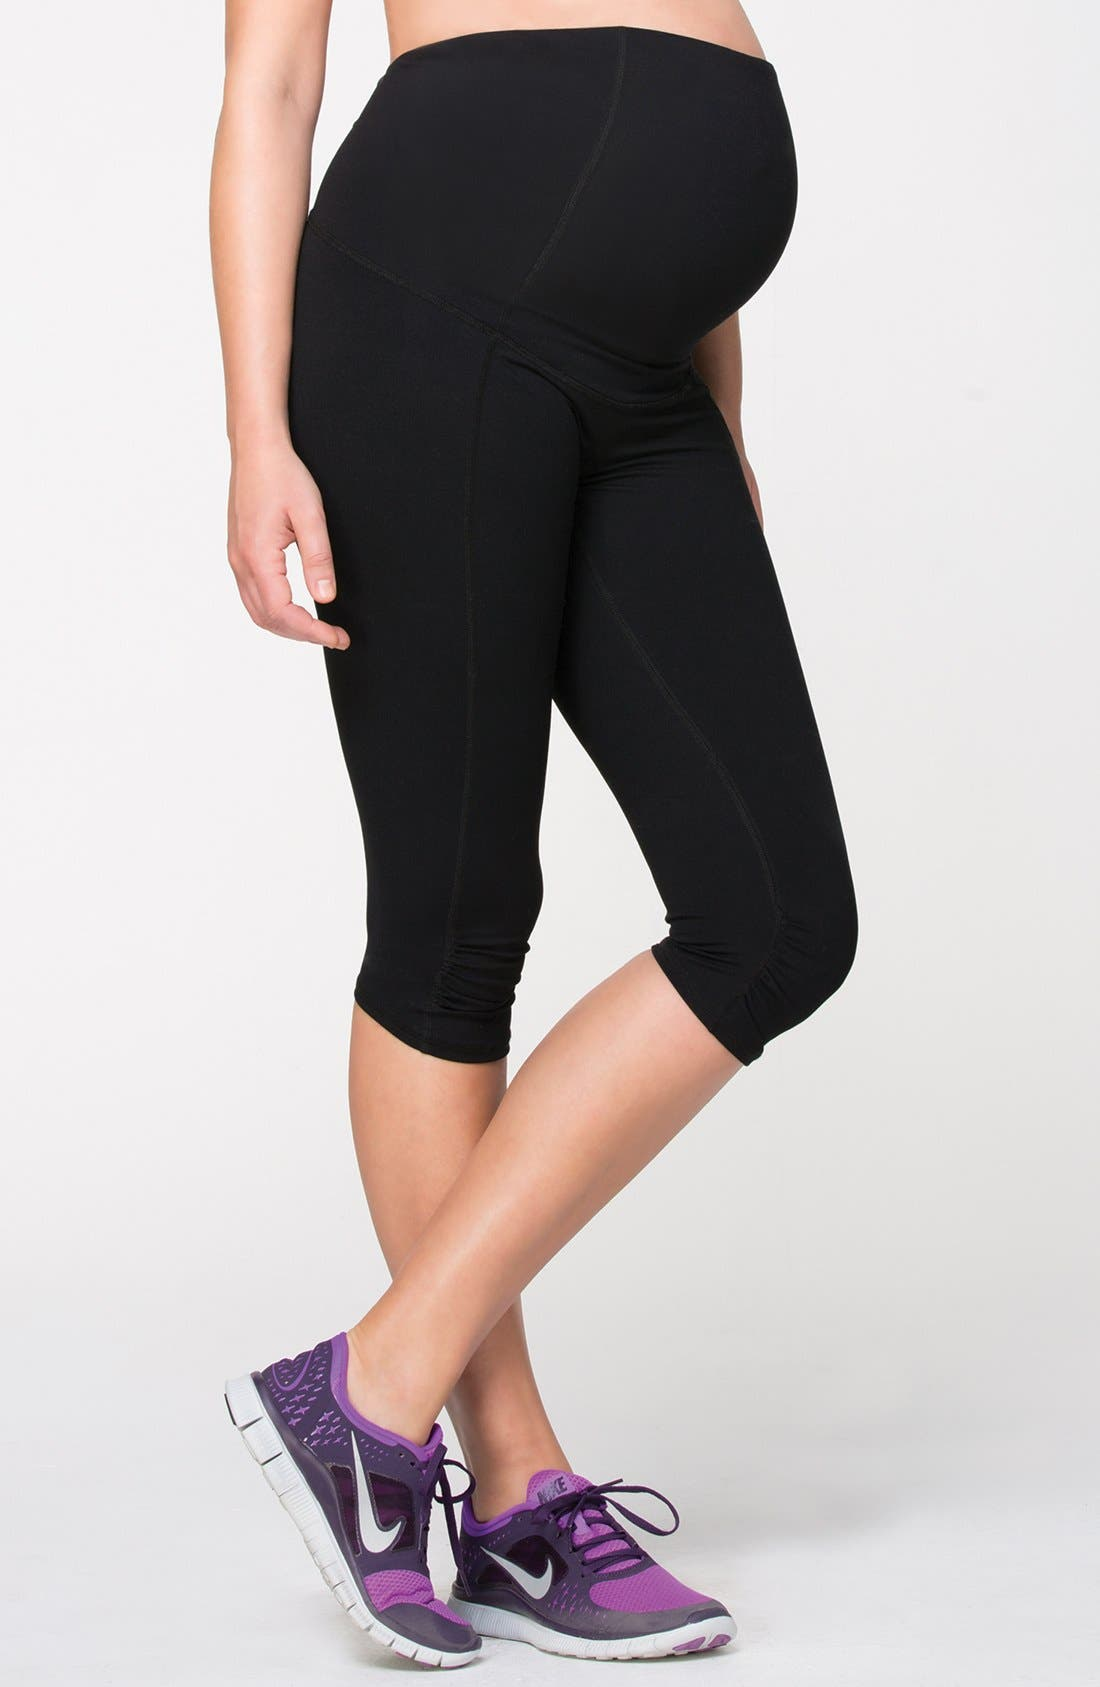 INGRID & ISABEL<SUP>®</SUP>, Knee Length Active Maternity Pants with Crossover Panel, Main thumbnail 1, color, JET BLACK